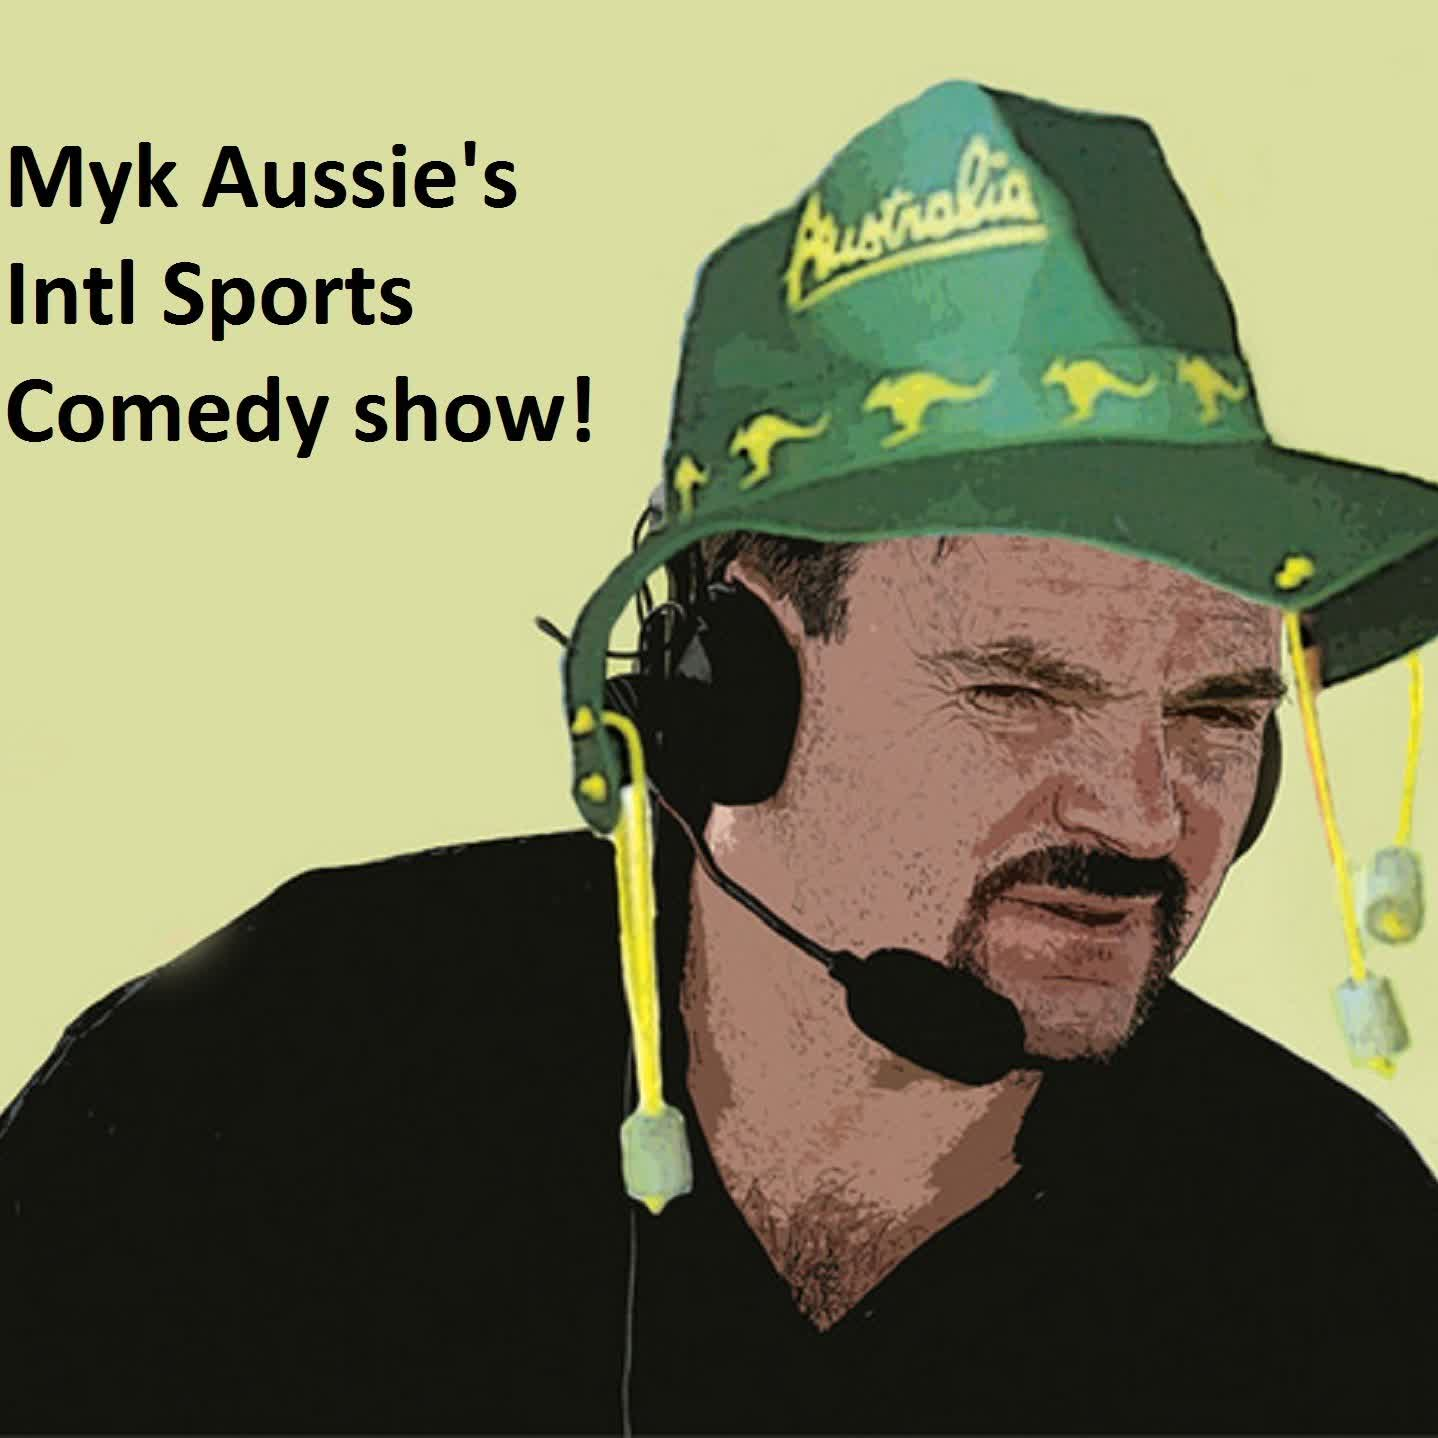 Myk Aussie Intl Sports, Sports Comedy show - Episode 8